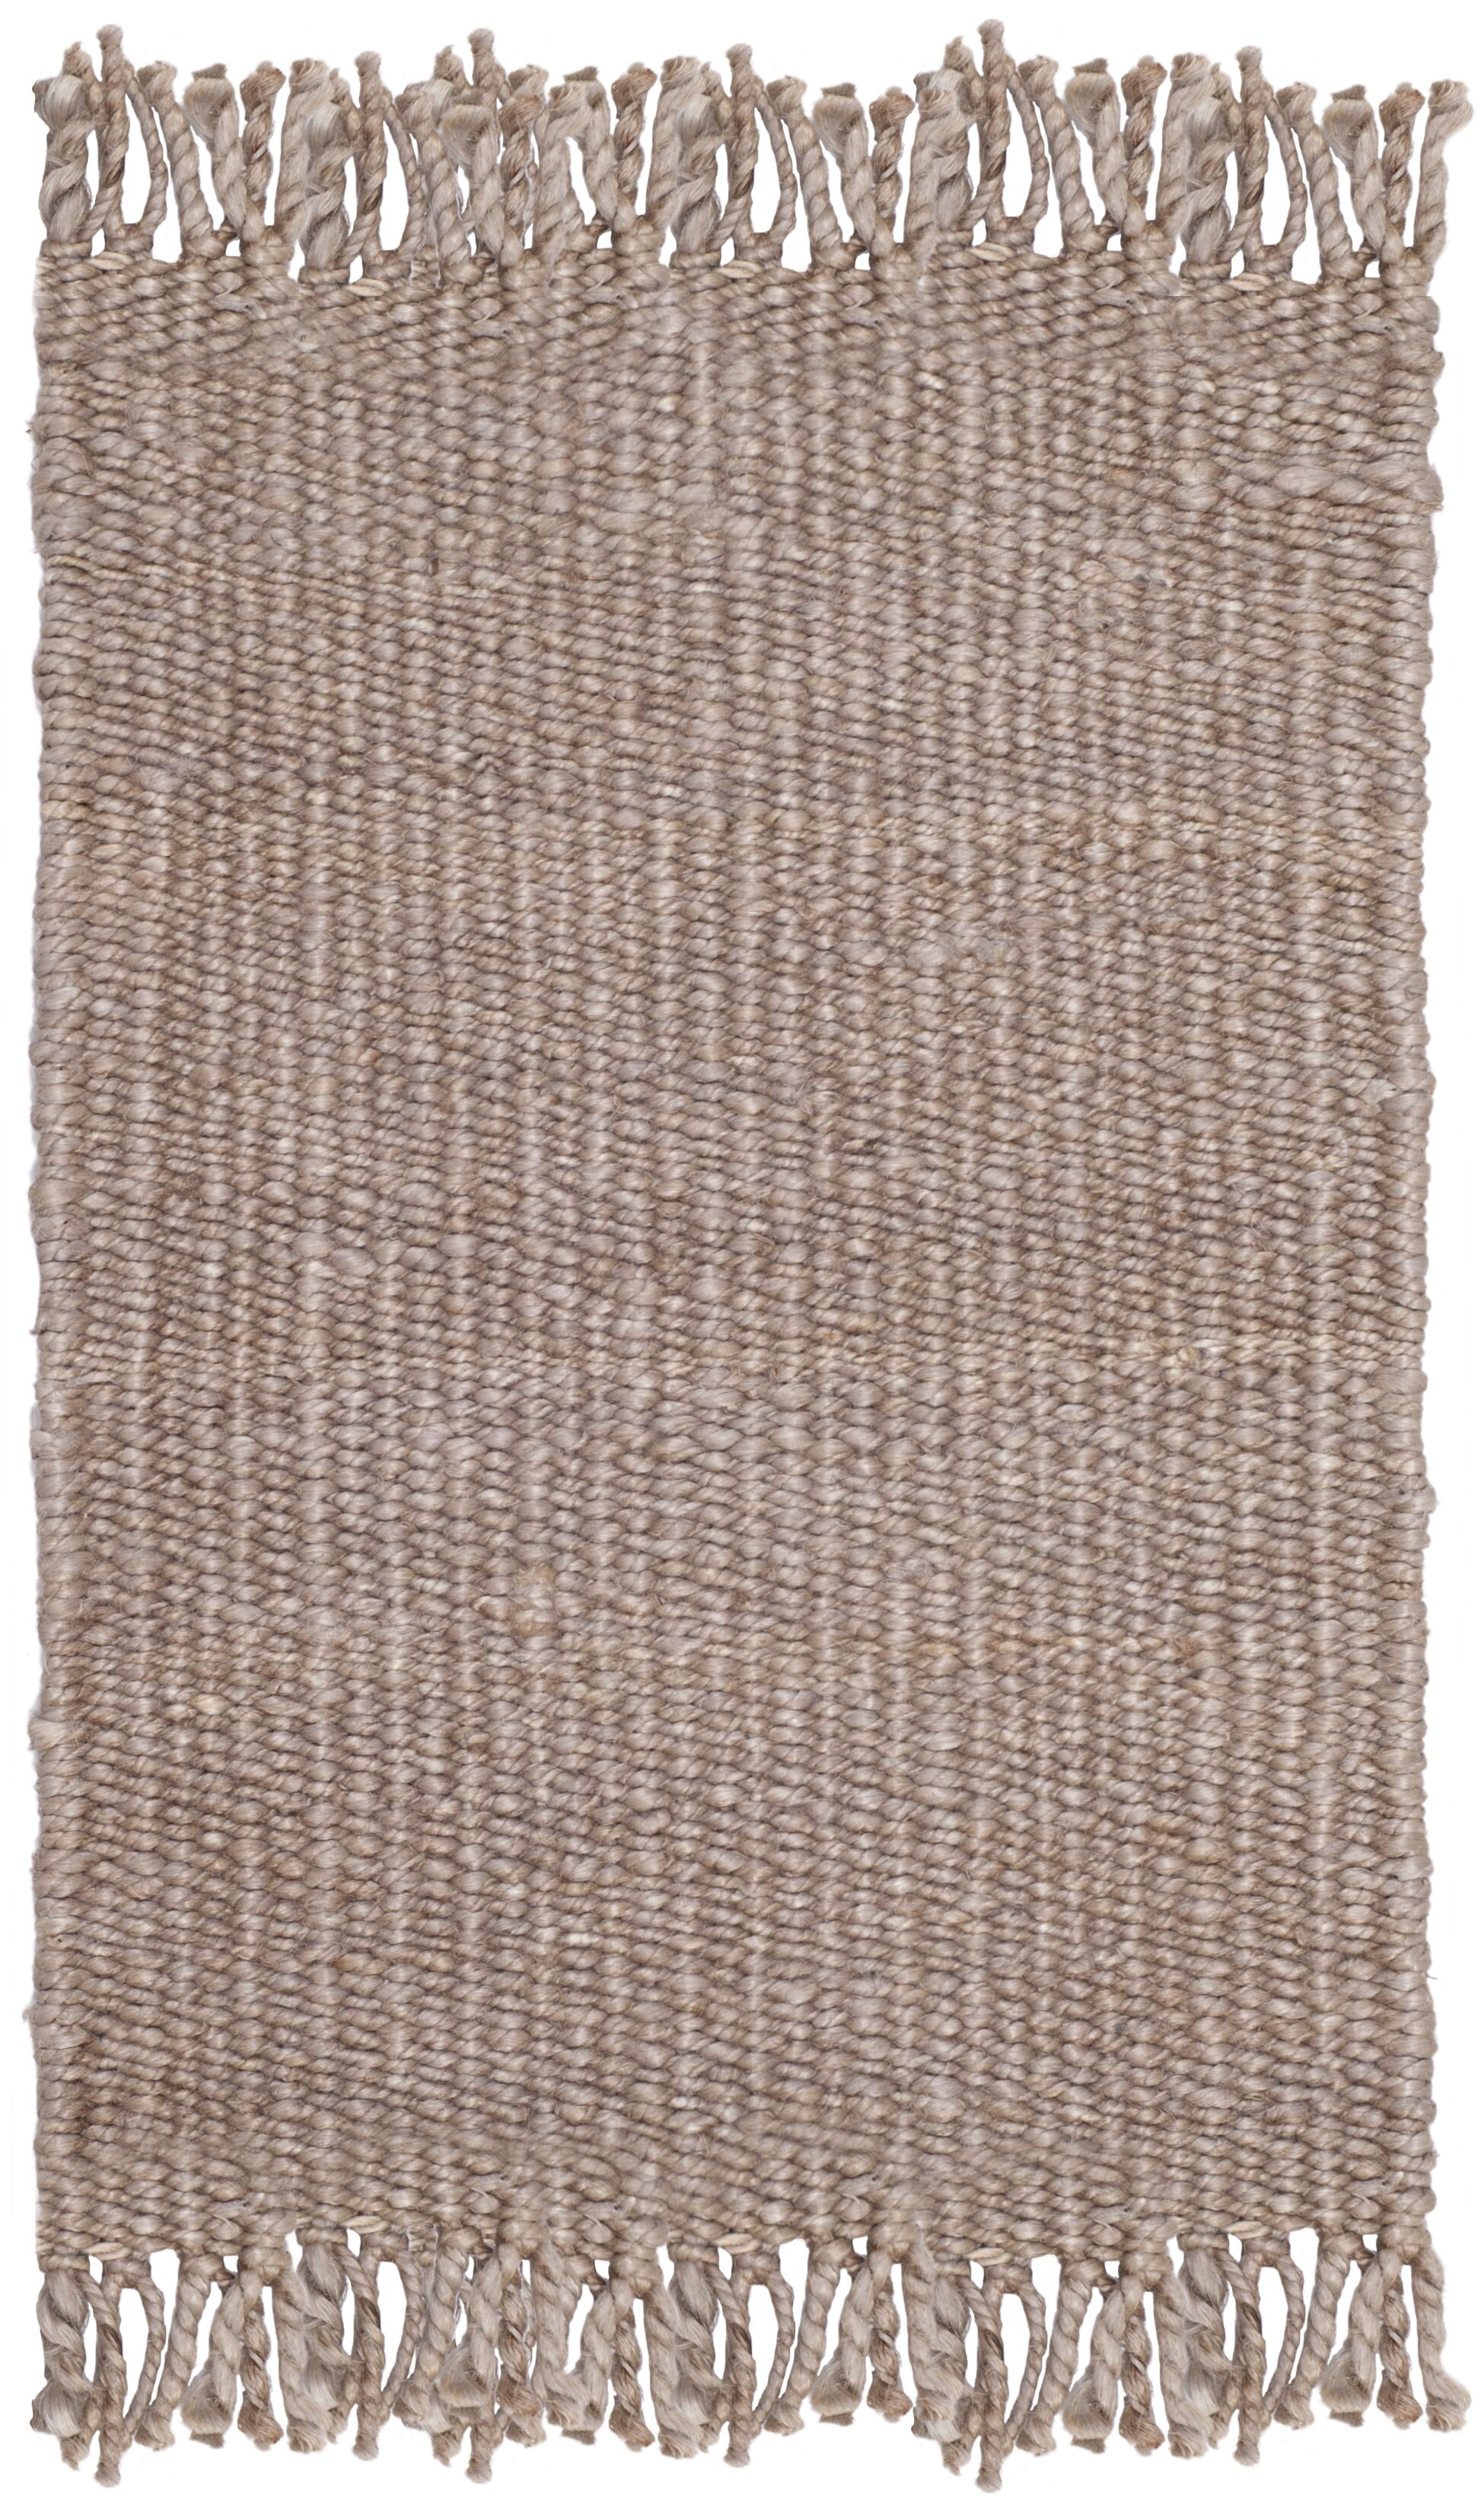 Lookout Fiber Hand-Woven Gray Area Rug Rug Size: Round 6'